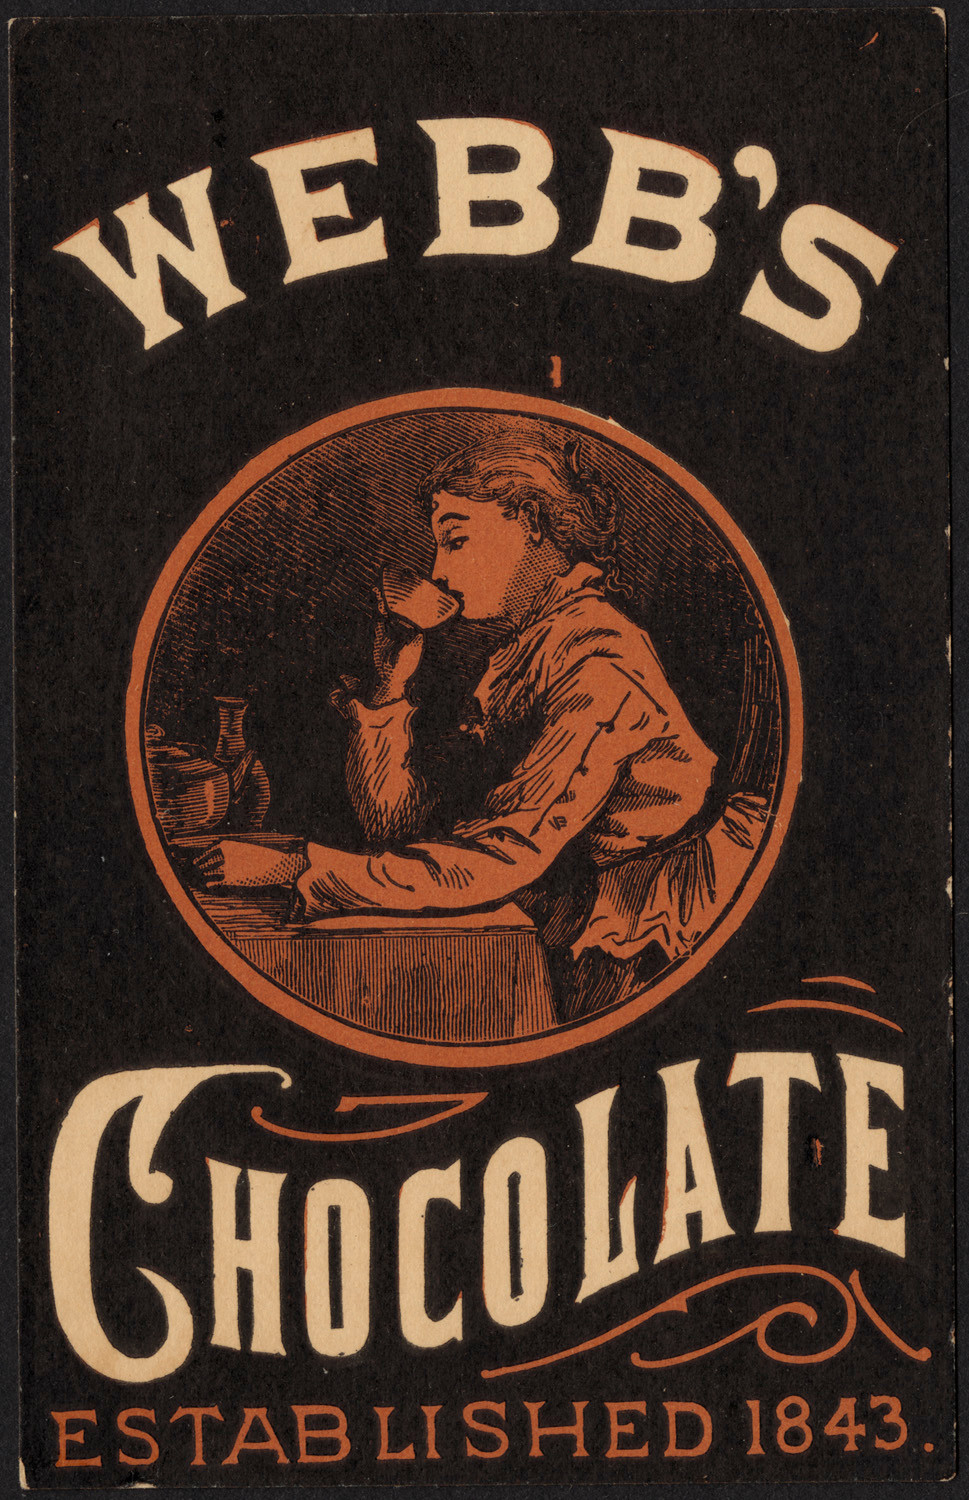 Webb's Chocolate, 1870 - 1900, Boston Public Library